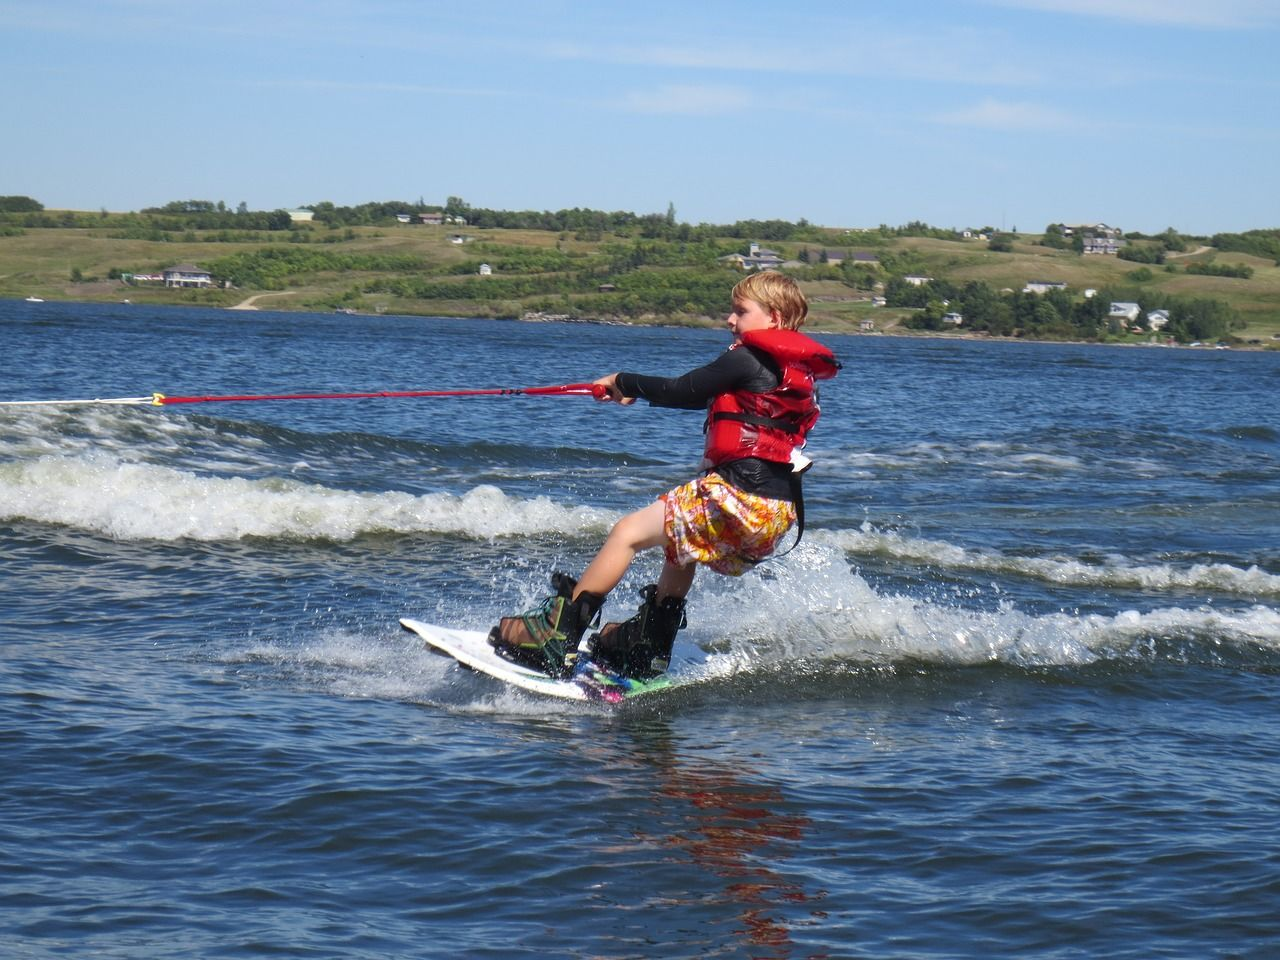 Child on the wakeboard